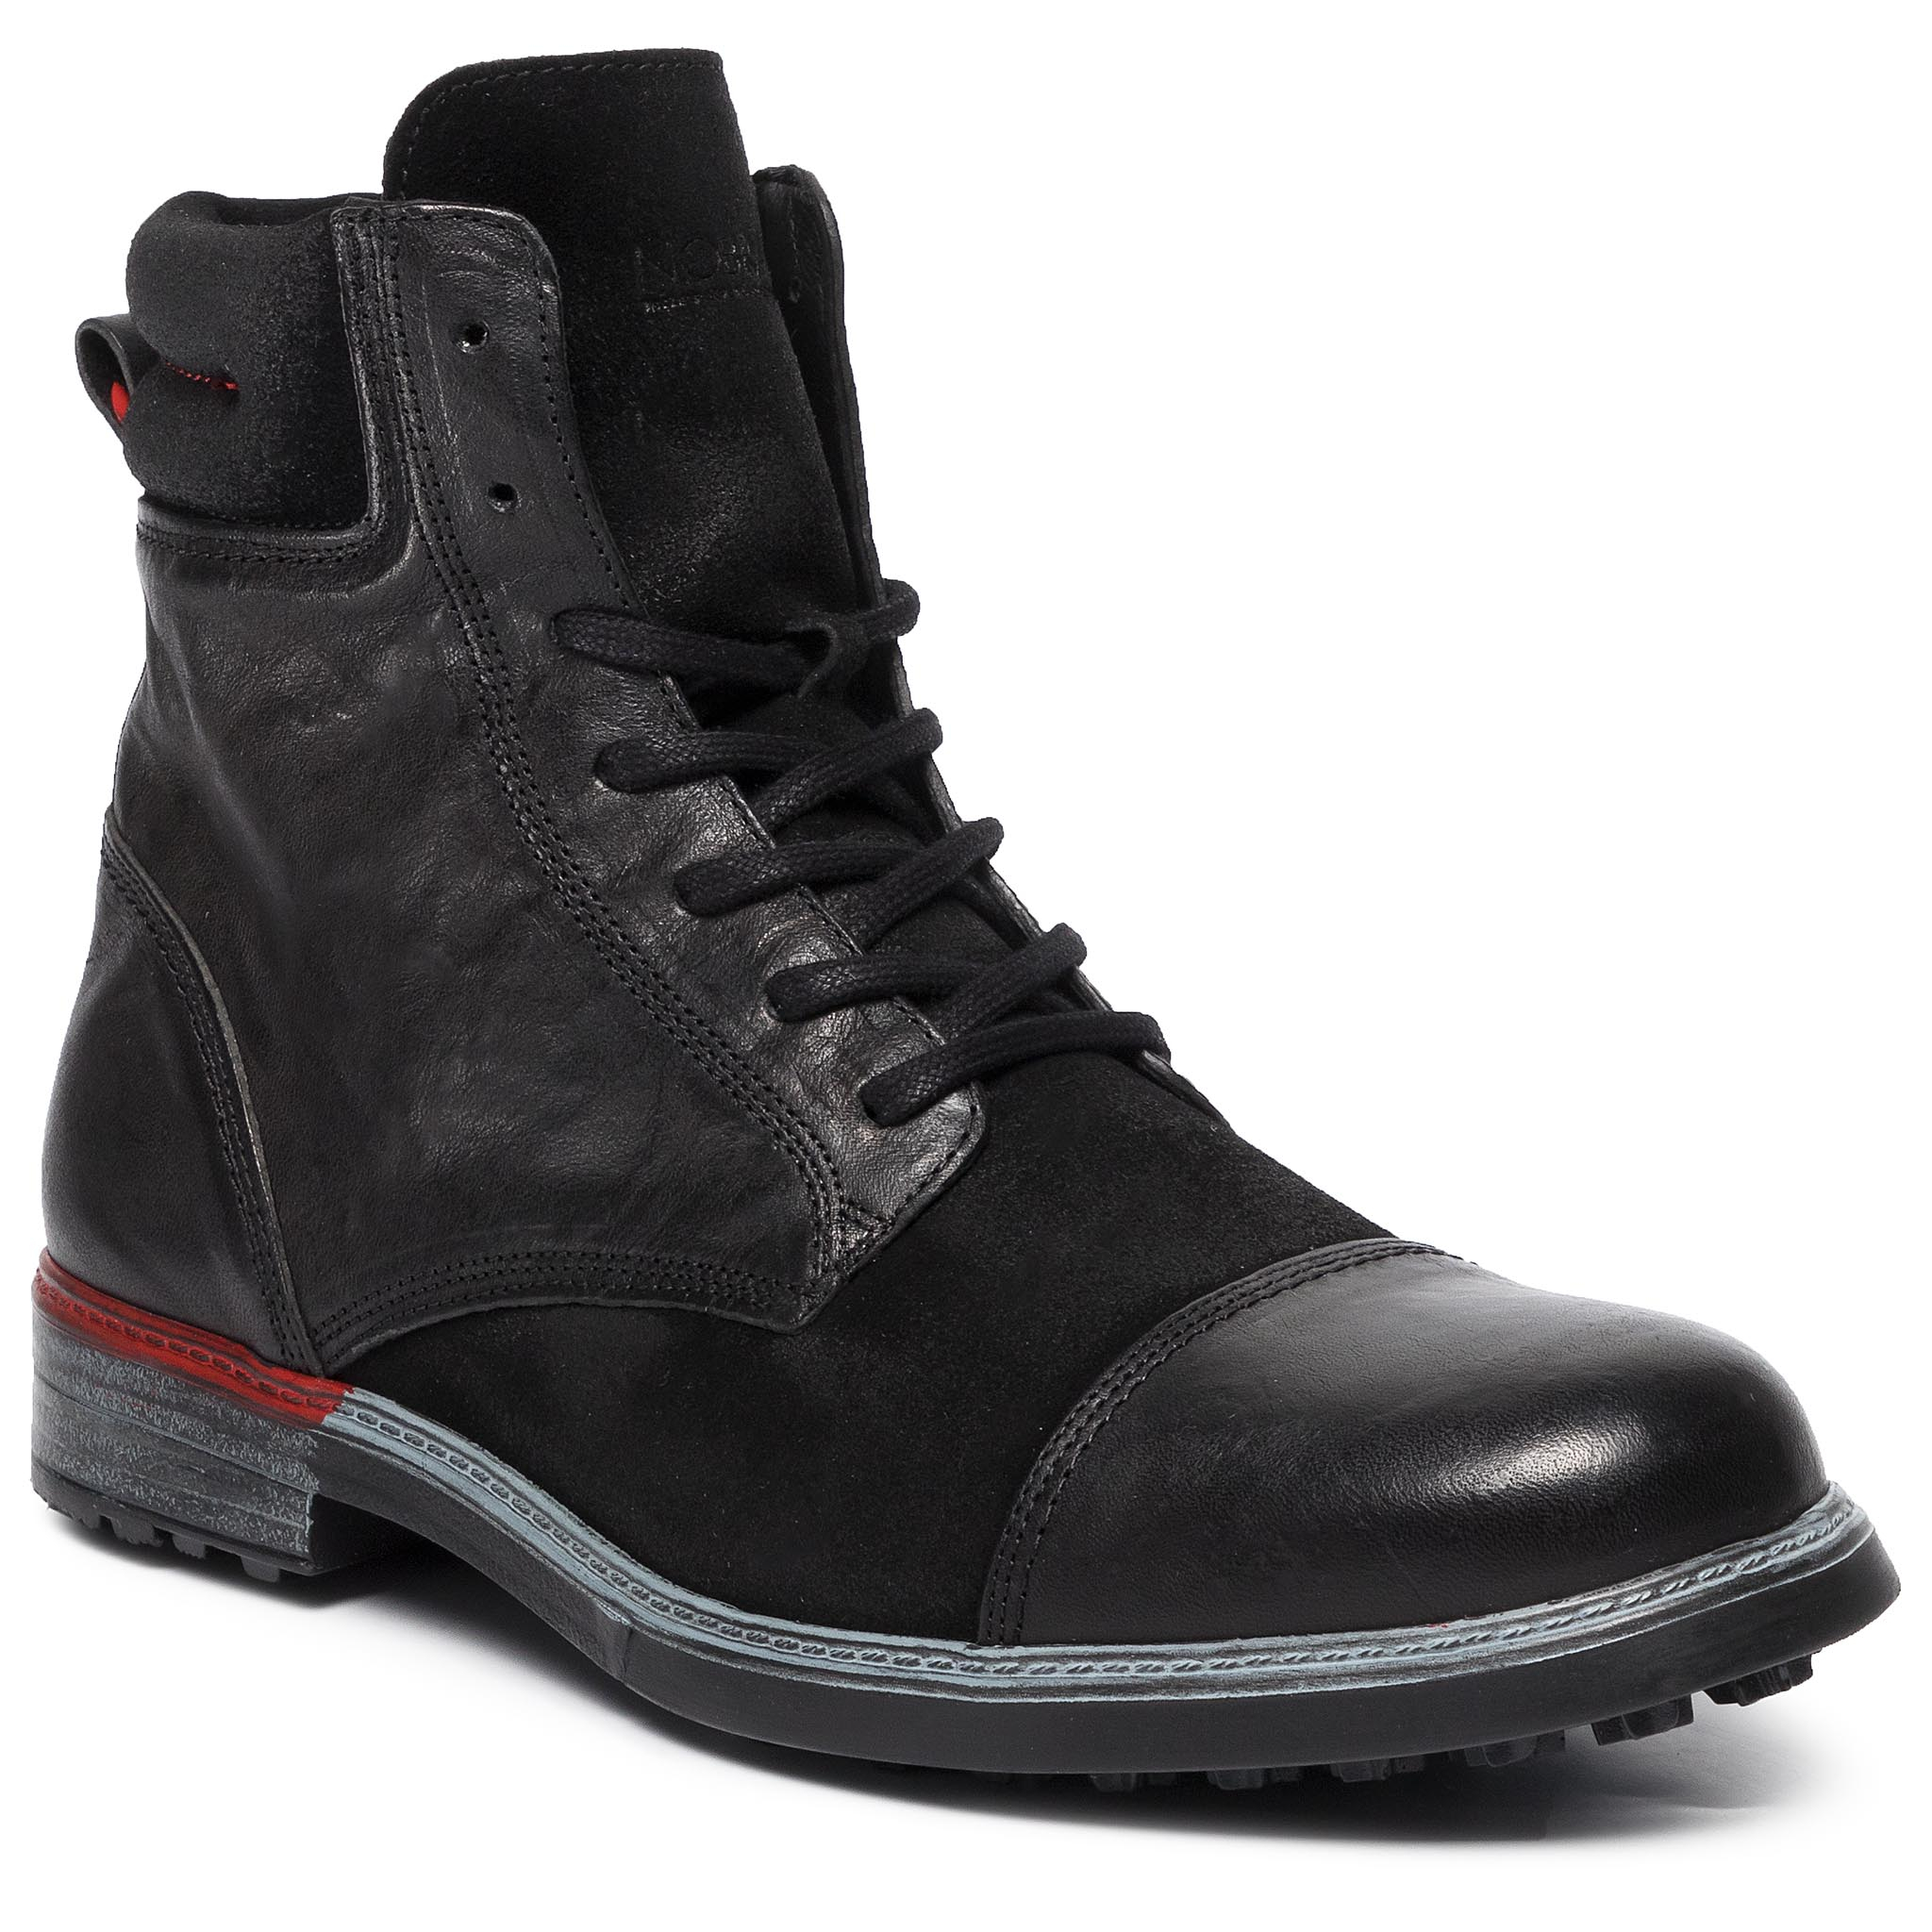 Boots NOBRAND - Iron 3 13272 Black